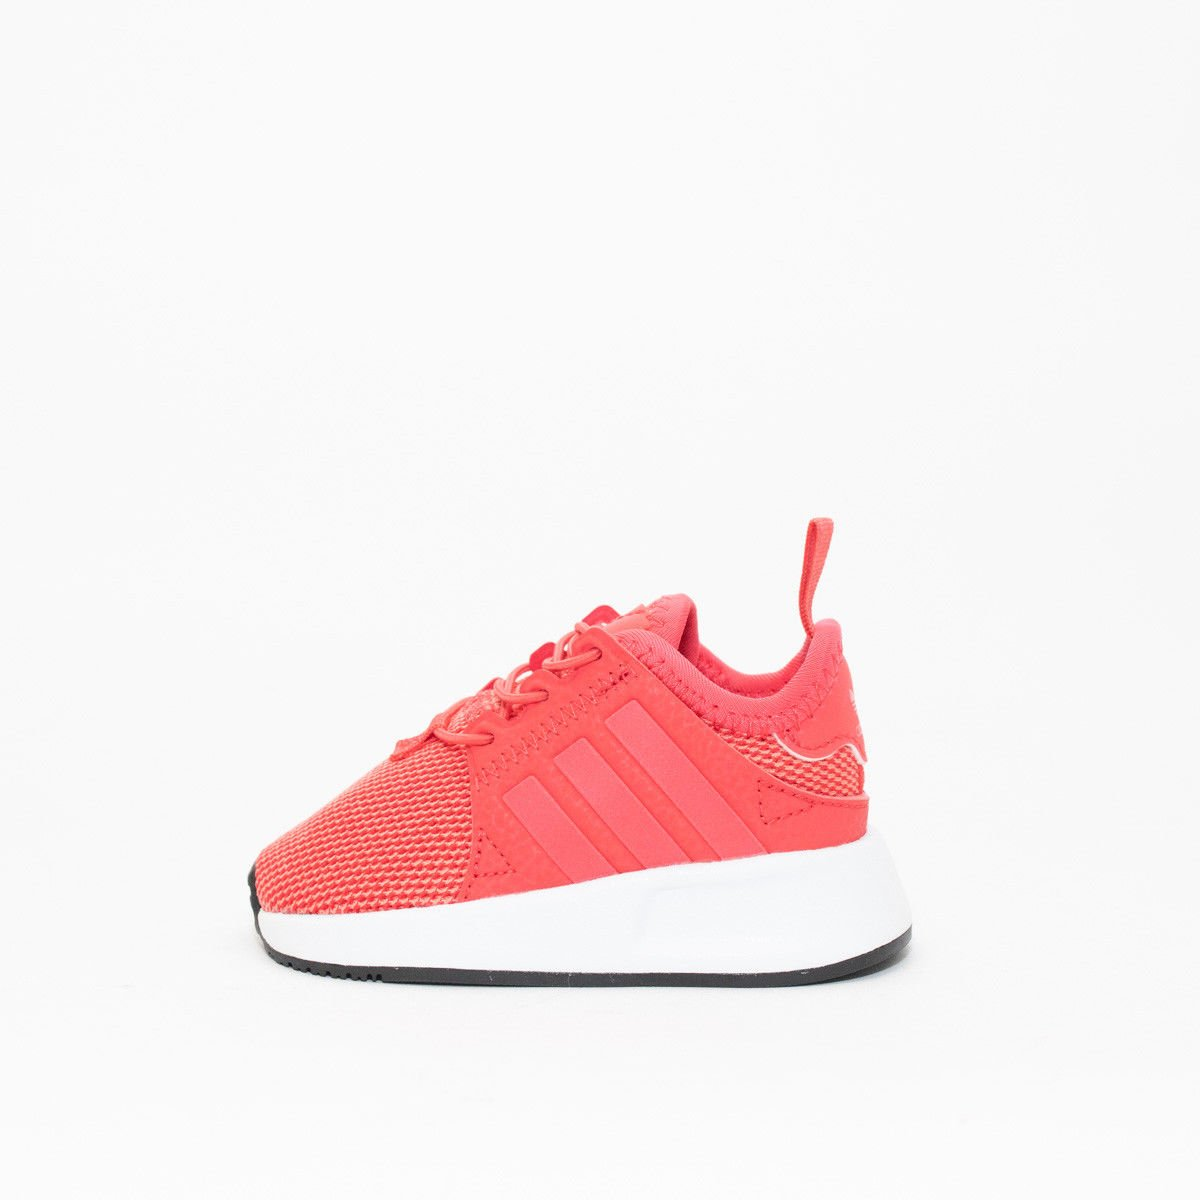 6c1303dfeddeaa ... Adidas X PLR feature technical mesh and NMD lace cage with elastic and  normal laces. http   ow.ly y5Gc30no1ip  adidas  adidasxplr  xplr  nursery   kids ...